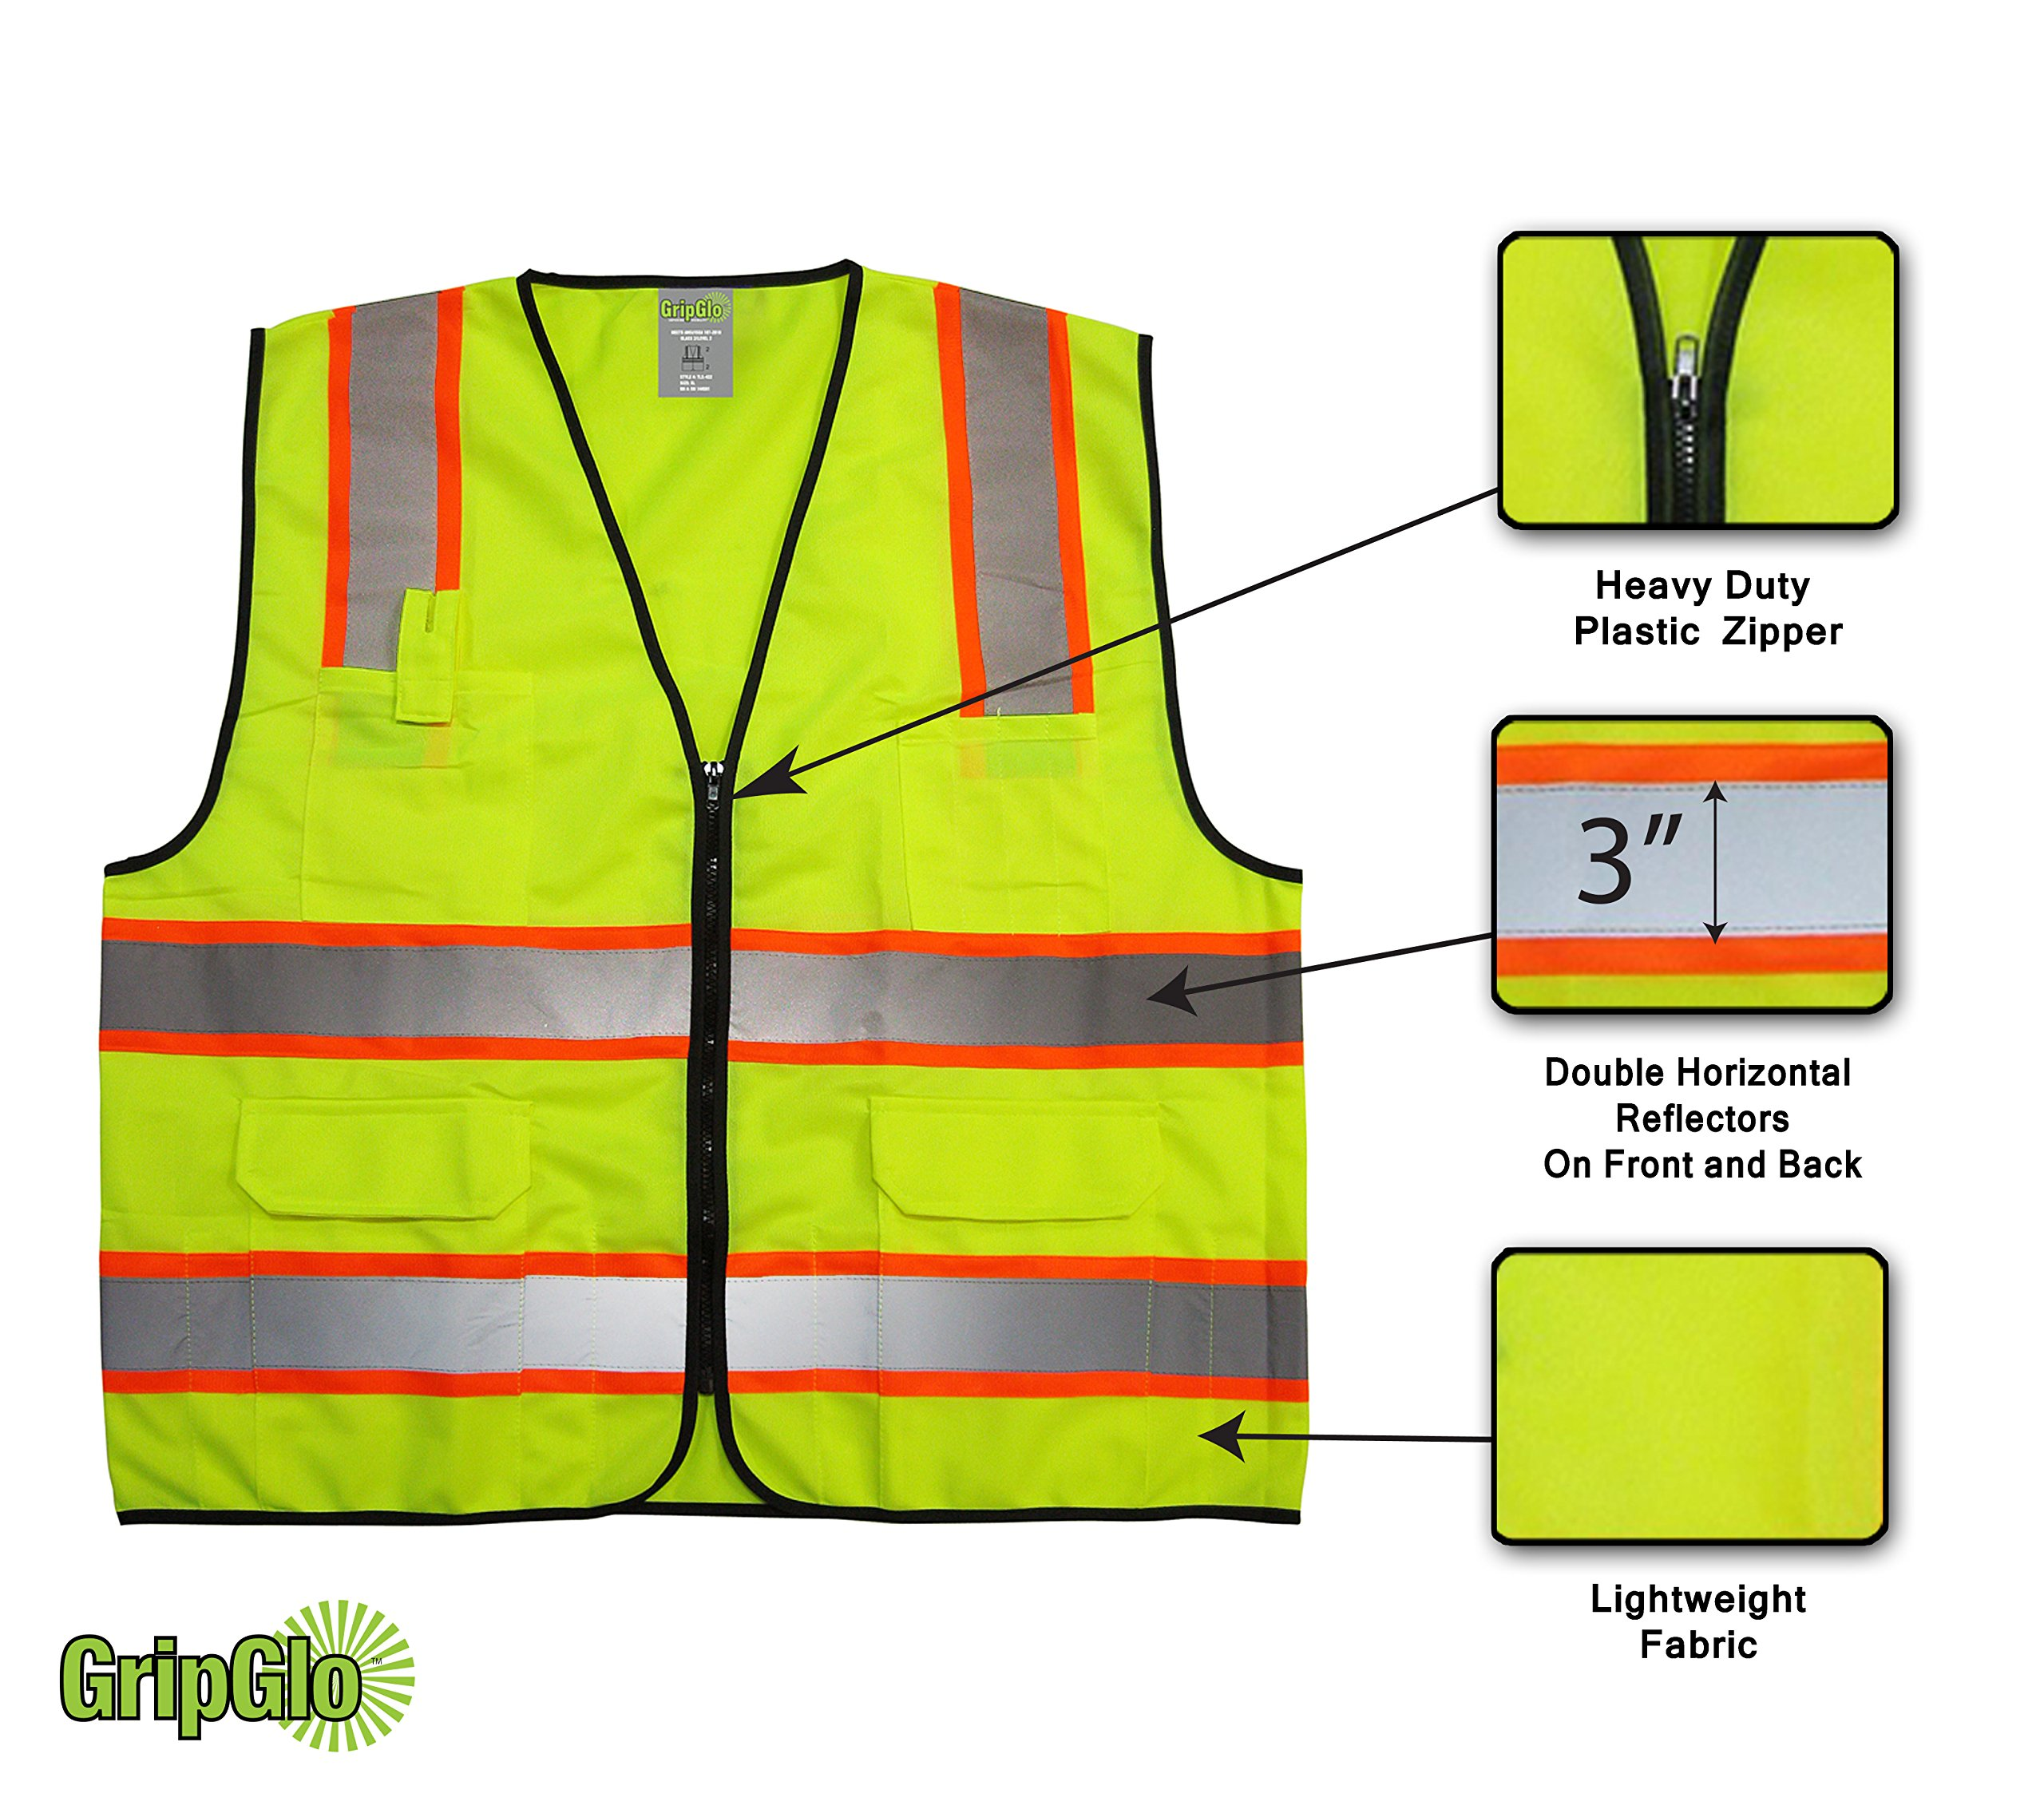 GripGlo TLS-432 Amazing High Visibility Reflective Safety Vest With 6 Multi-Functional Pockets Neon Lime Zipper Front, 2'' Reflective Strips With ORANGE TRIM For MAXIMUM VISIBILITY - Meets ANSI/ISEA 107-2010 - Class 2/Level 2 - Large by GripGlo™ (Image #2)